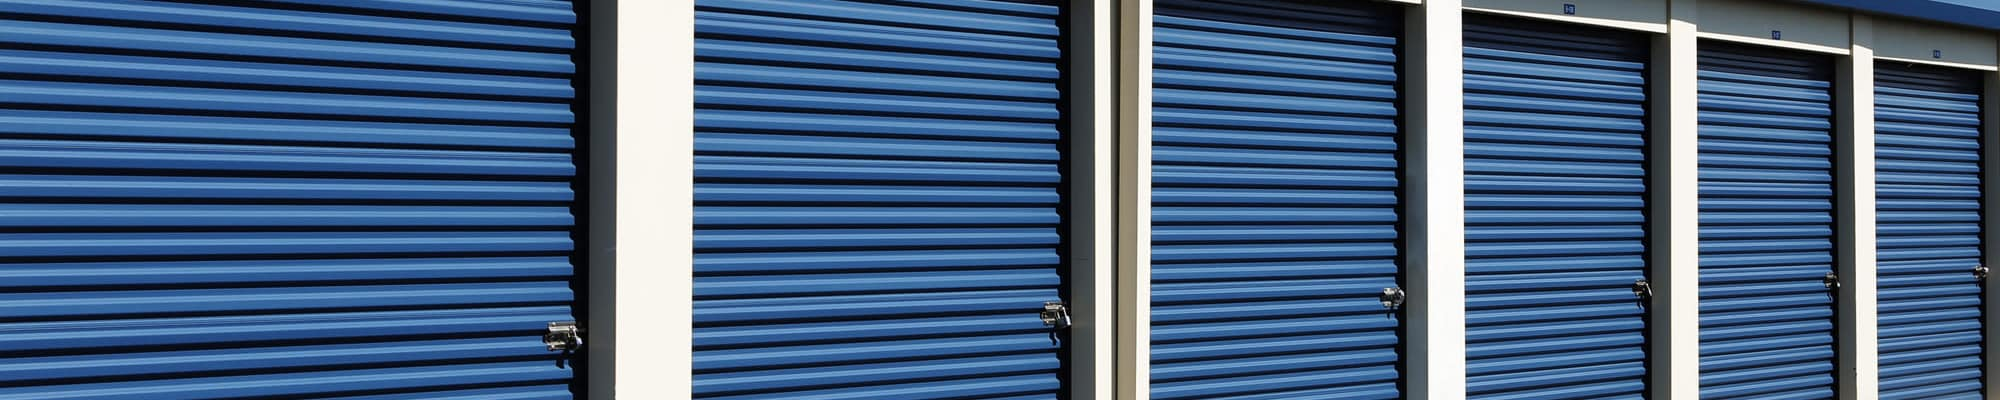 Contact Midgard Self Storage in Greenville, South Carolina